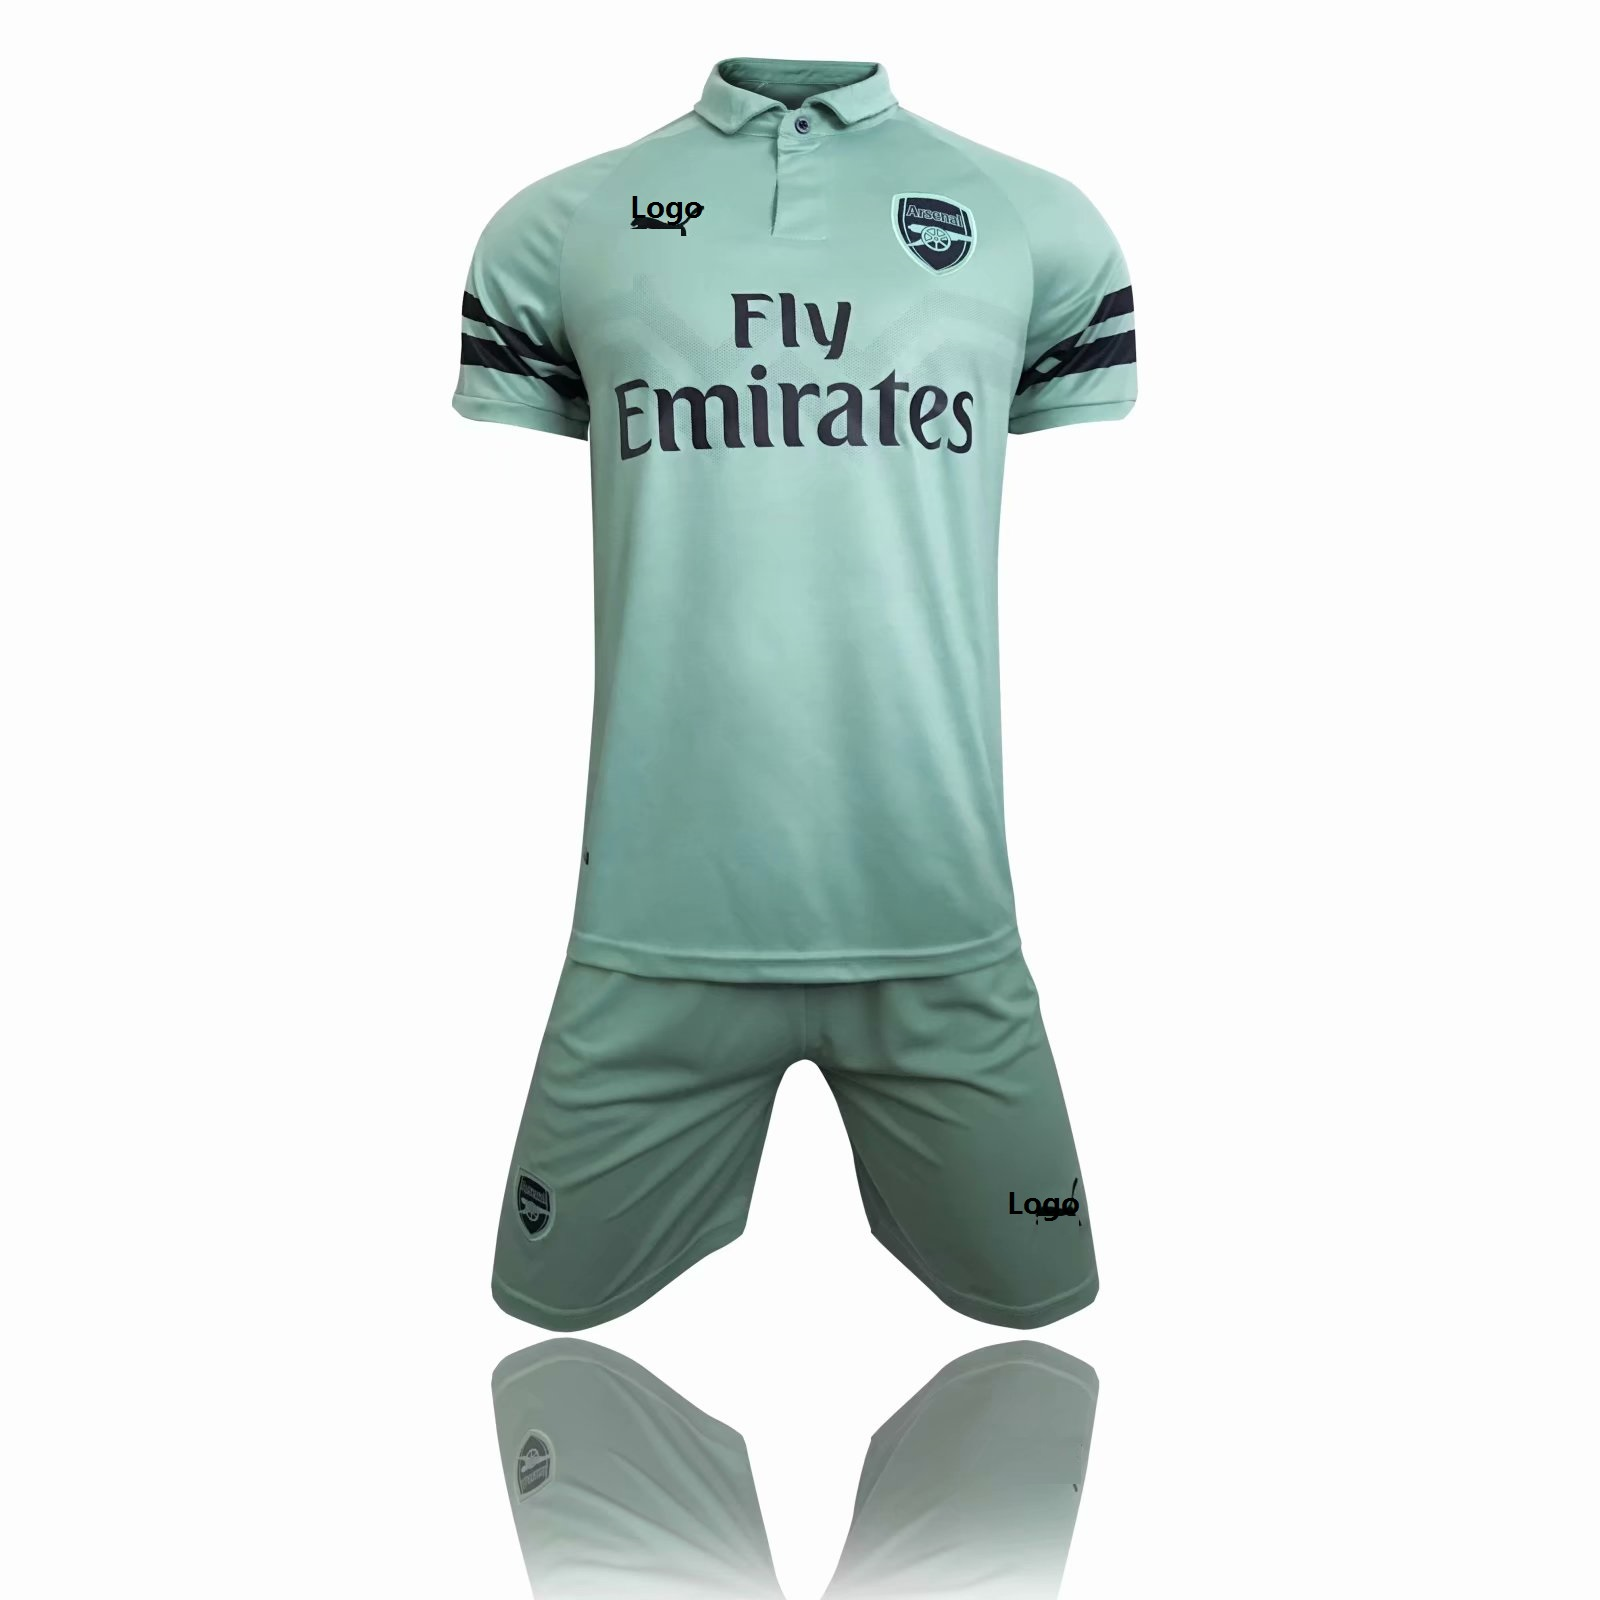 2018 19 Men Green Arsenal Third Away Soccer Uniforms Adult Football Kits  Item NO  549160 0e633cade